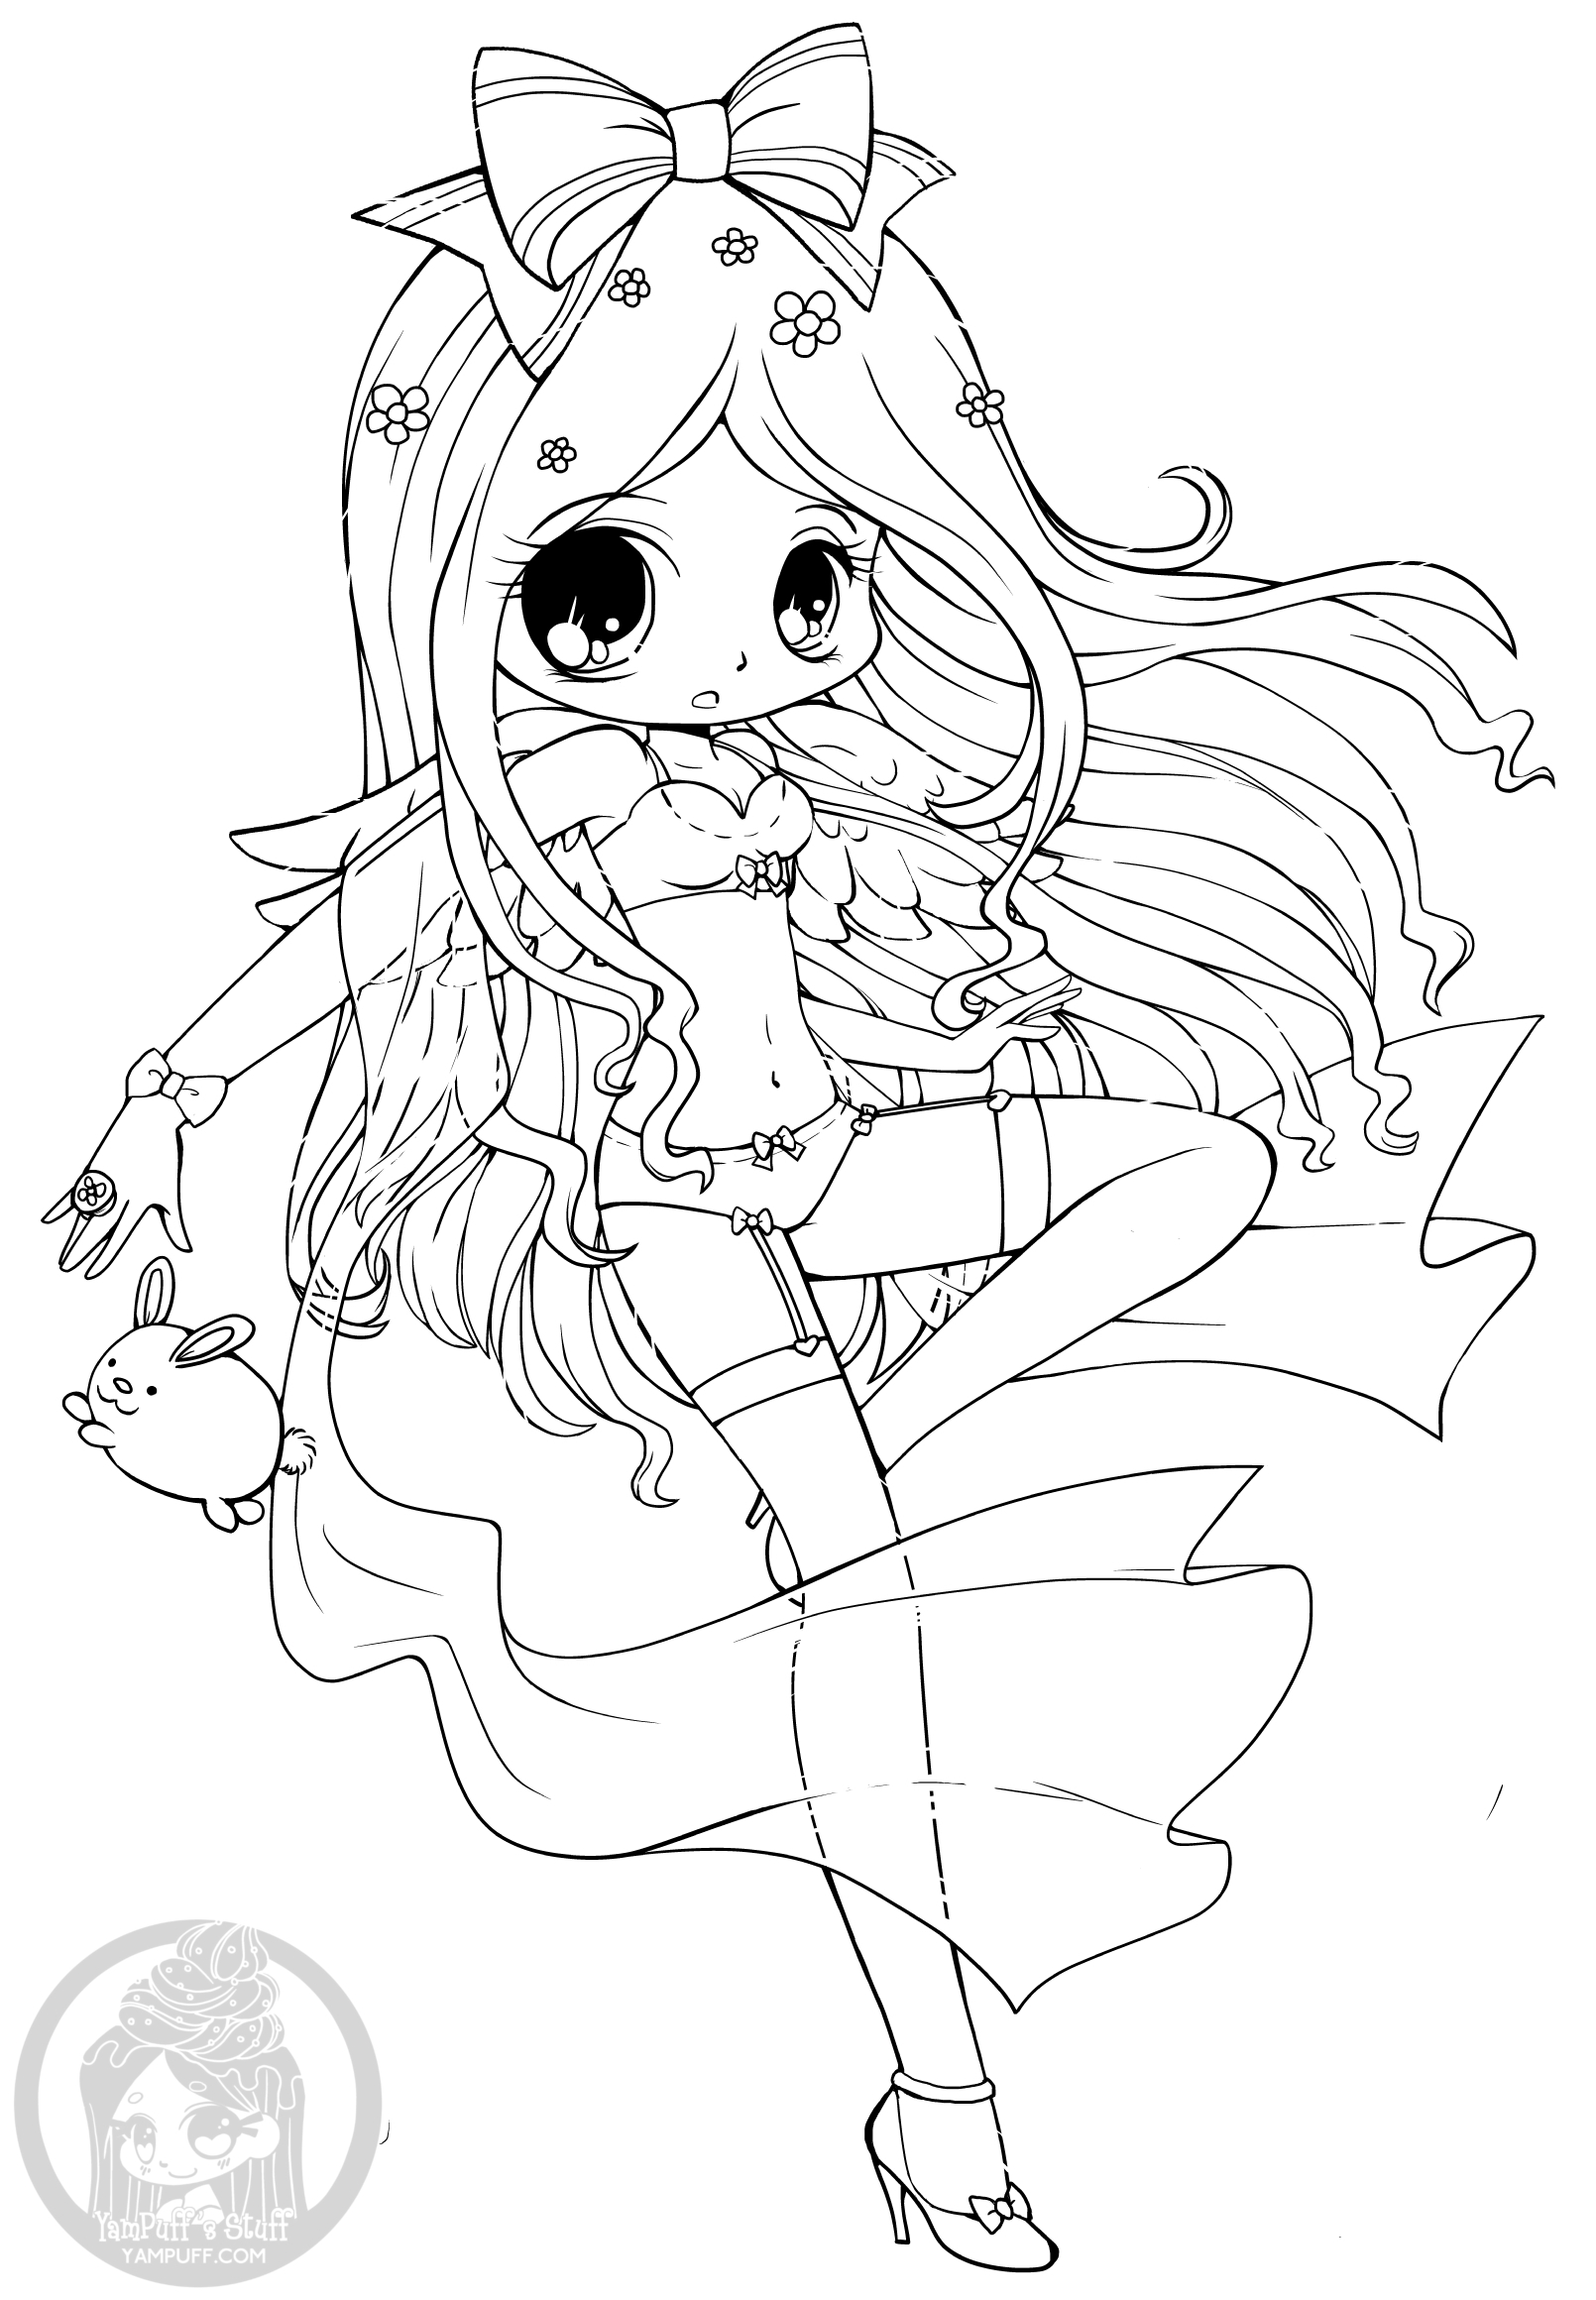 chibi girl coloring pages click on a picture to make it larger then print it out coloring chibi pages girl